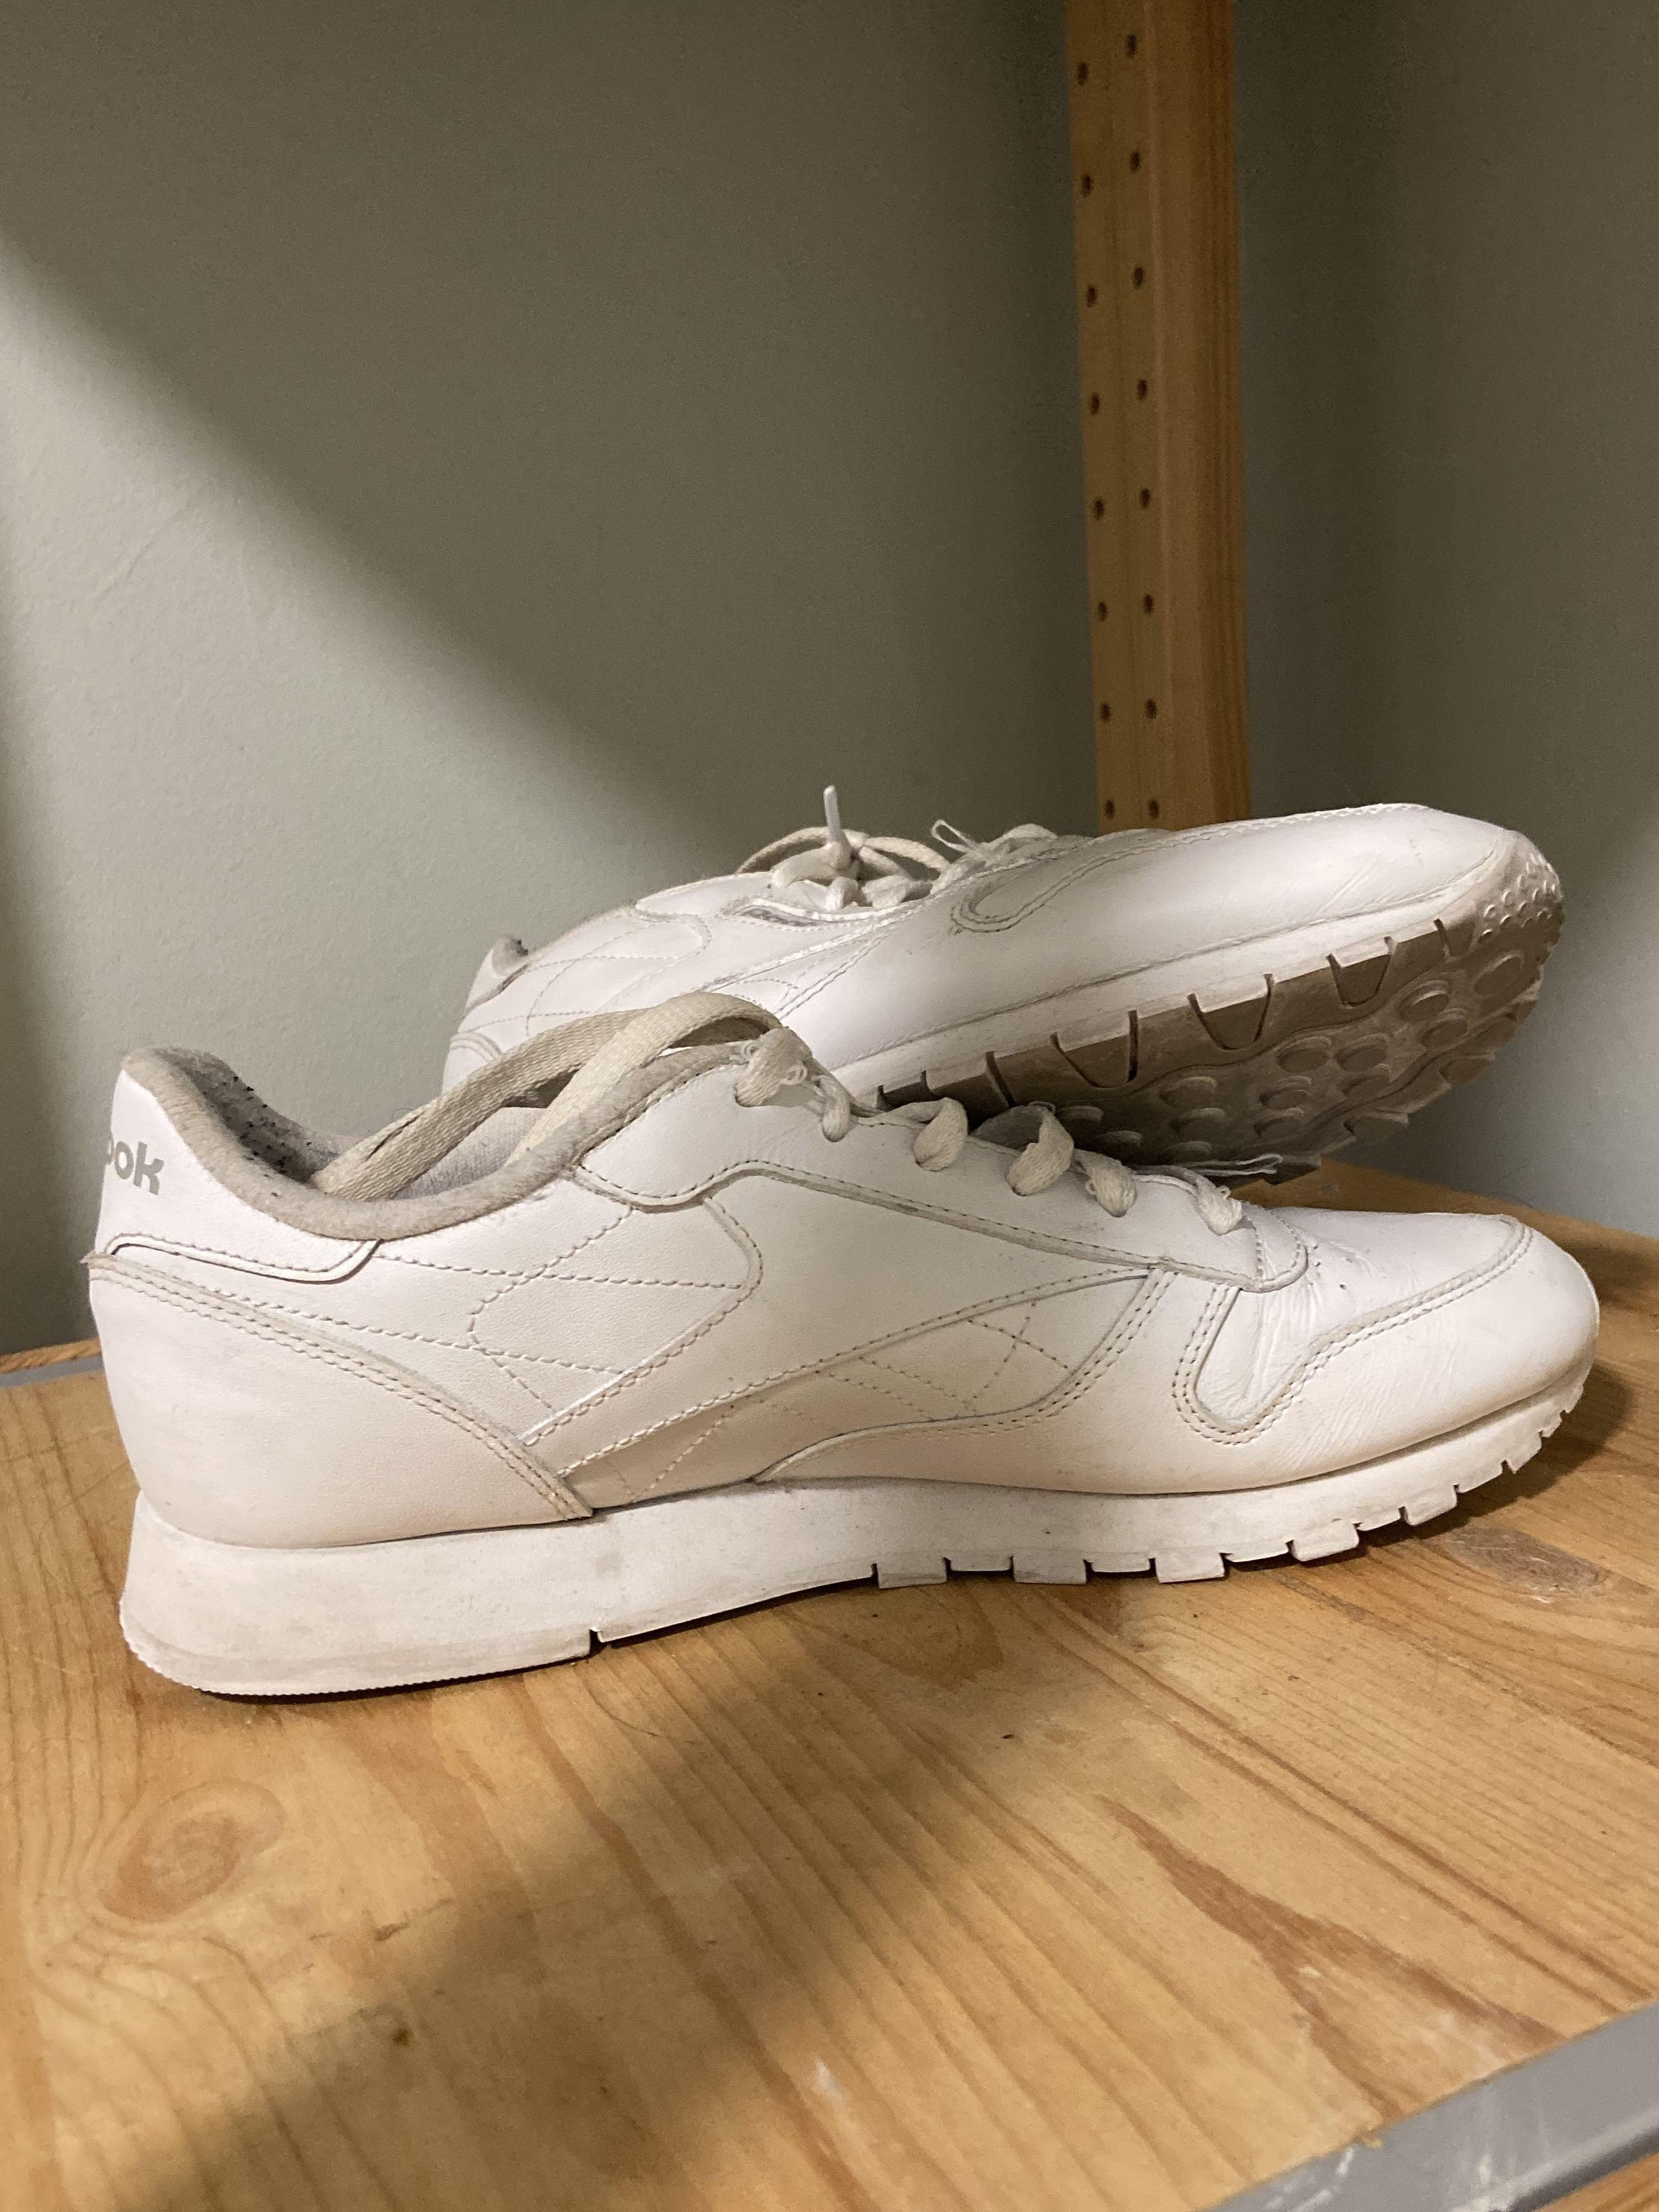 Reebok Classic Leather White on White Sneaker Runner Shoes Size 9